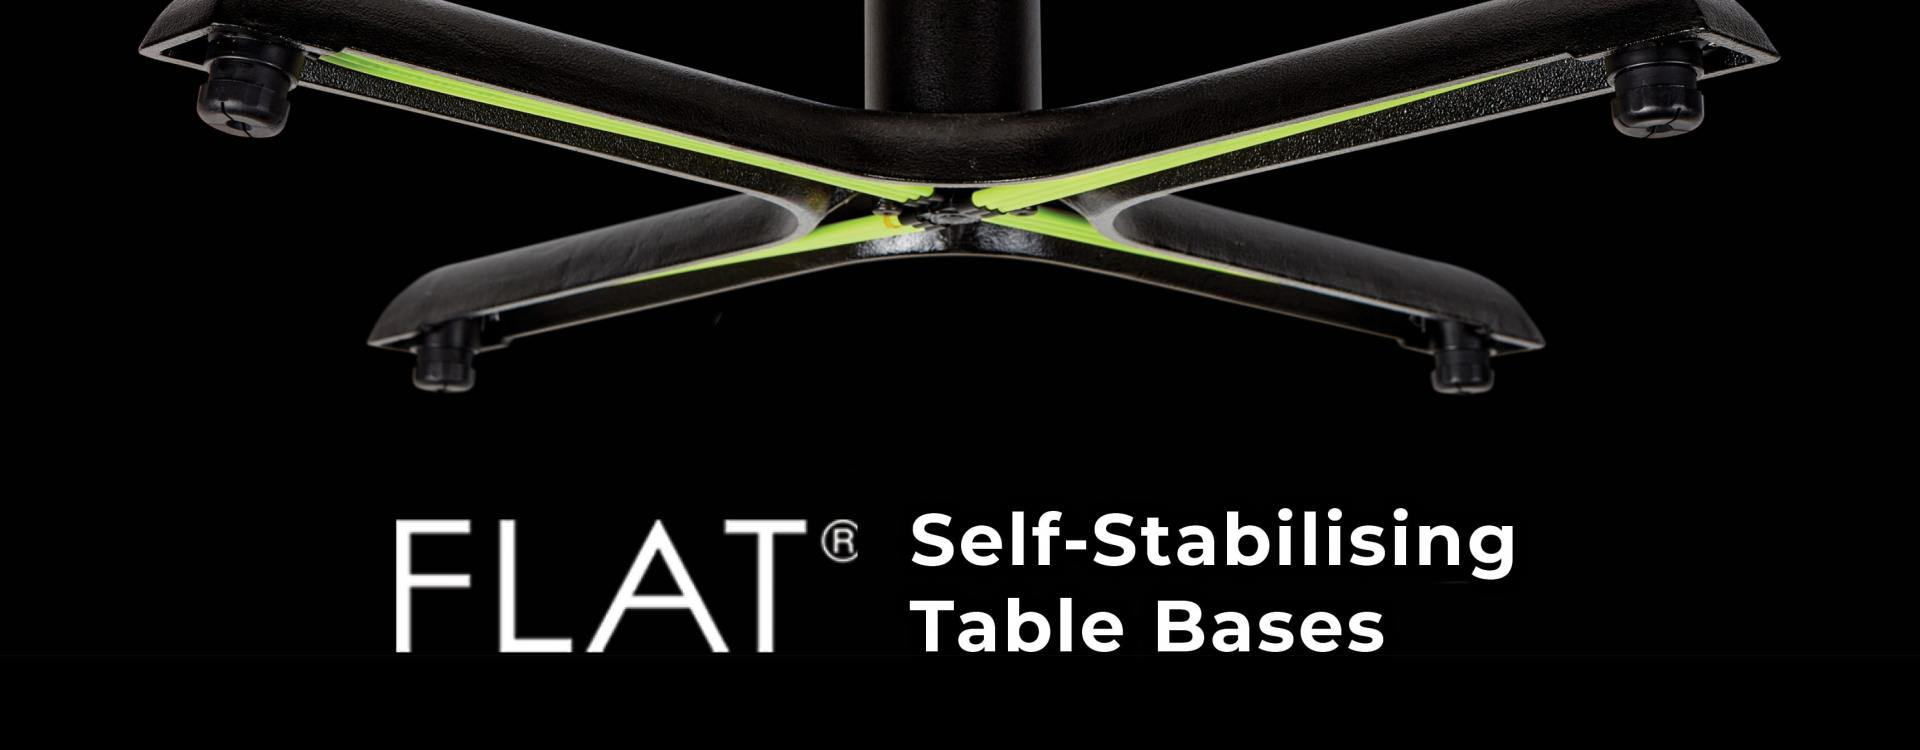 Smart Solutoins > FLAT Self-Stabilising Table Bases